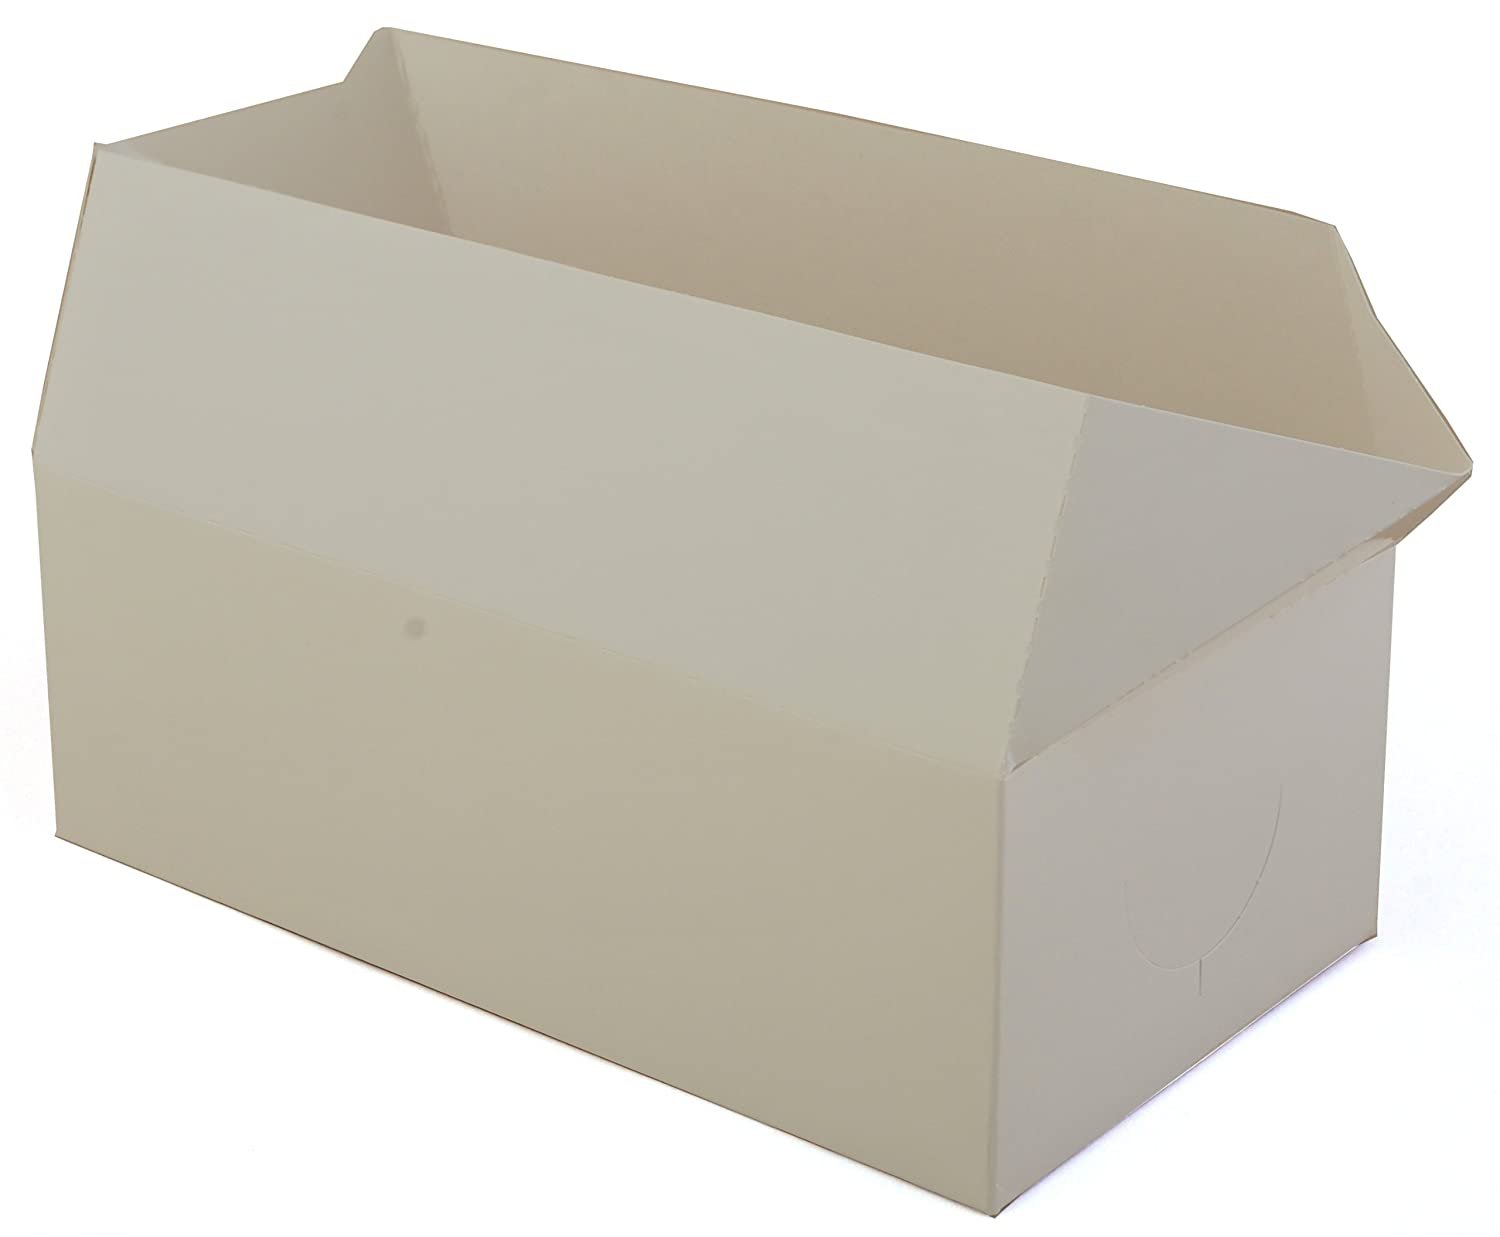 8-7//8 Length x 4-7//8 Width x 3-1//16 Height Southern Champion Tray 2730 Paperboard White Lunch Carry-Out Box Fast Top Case of 400